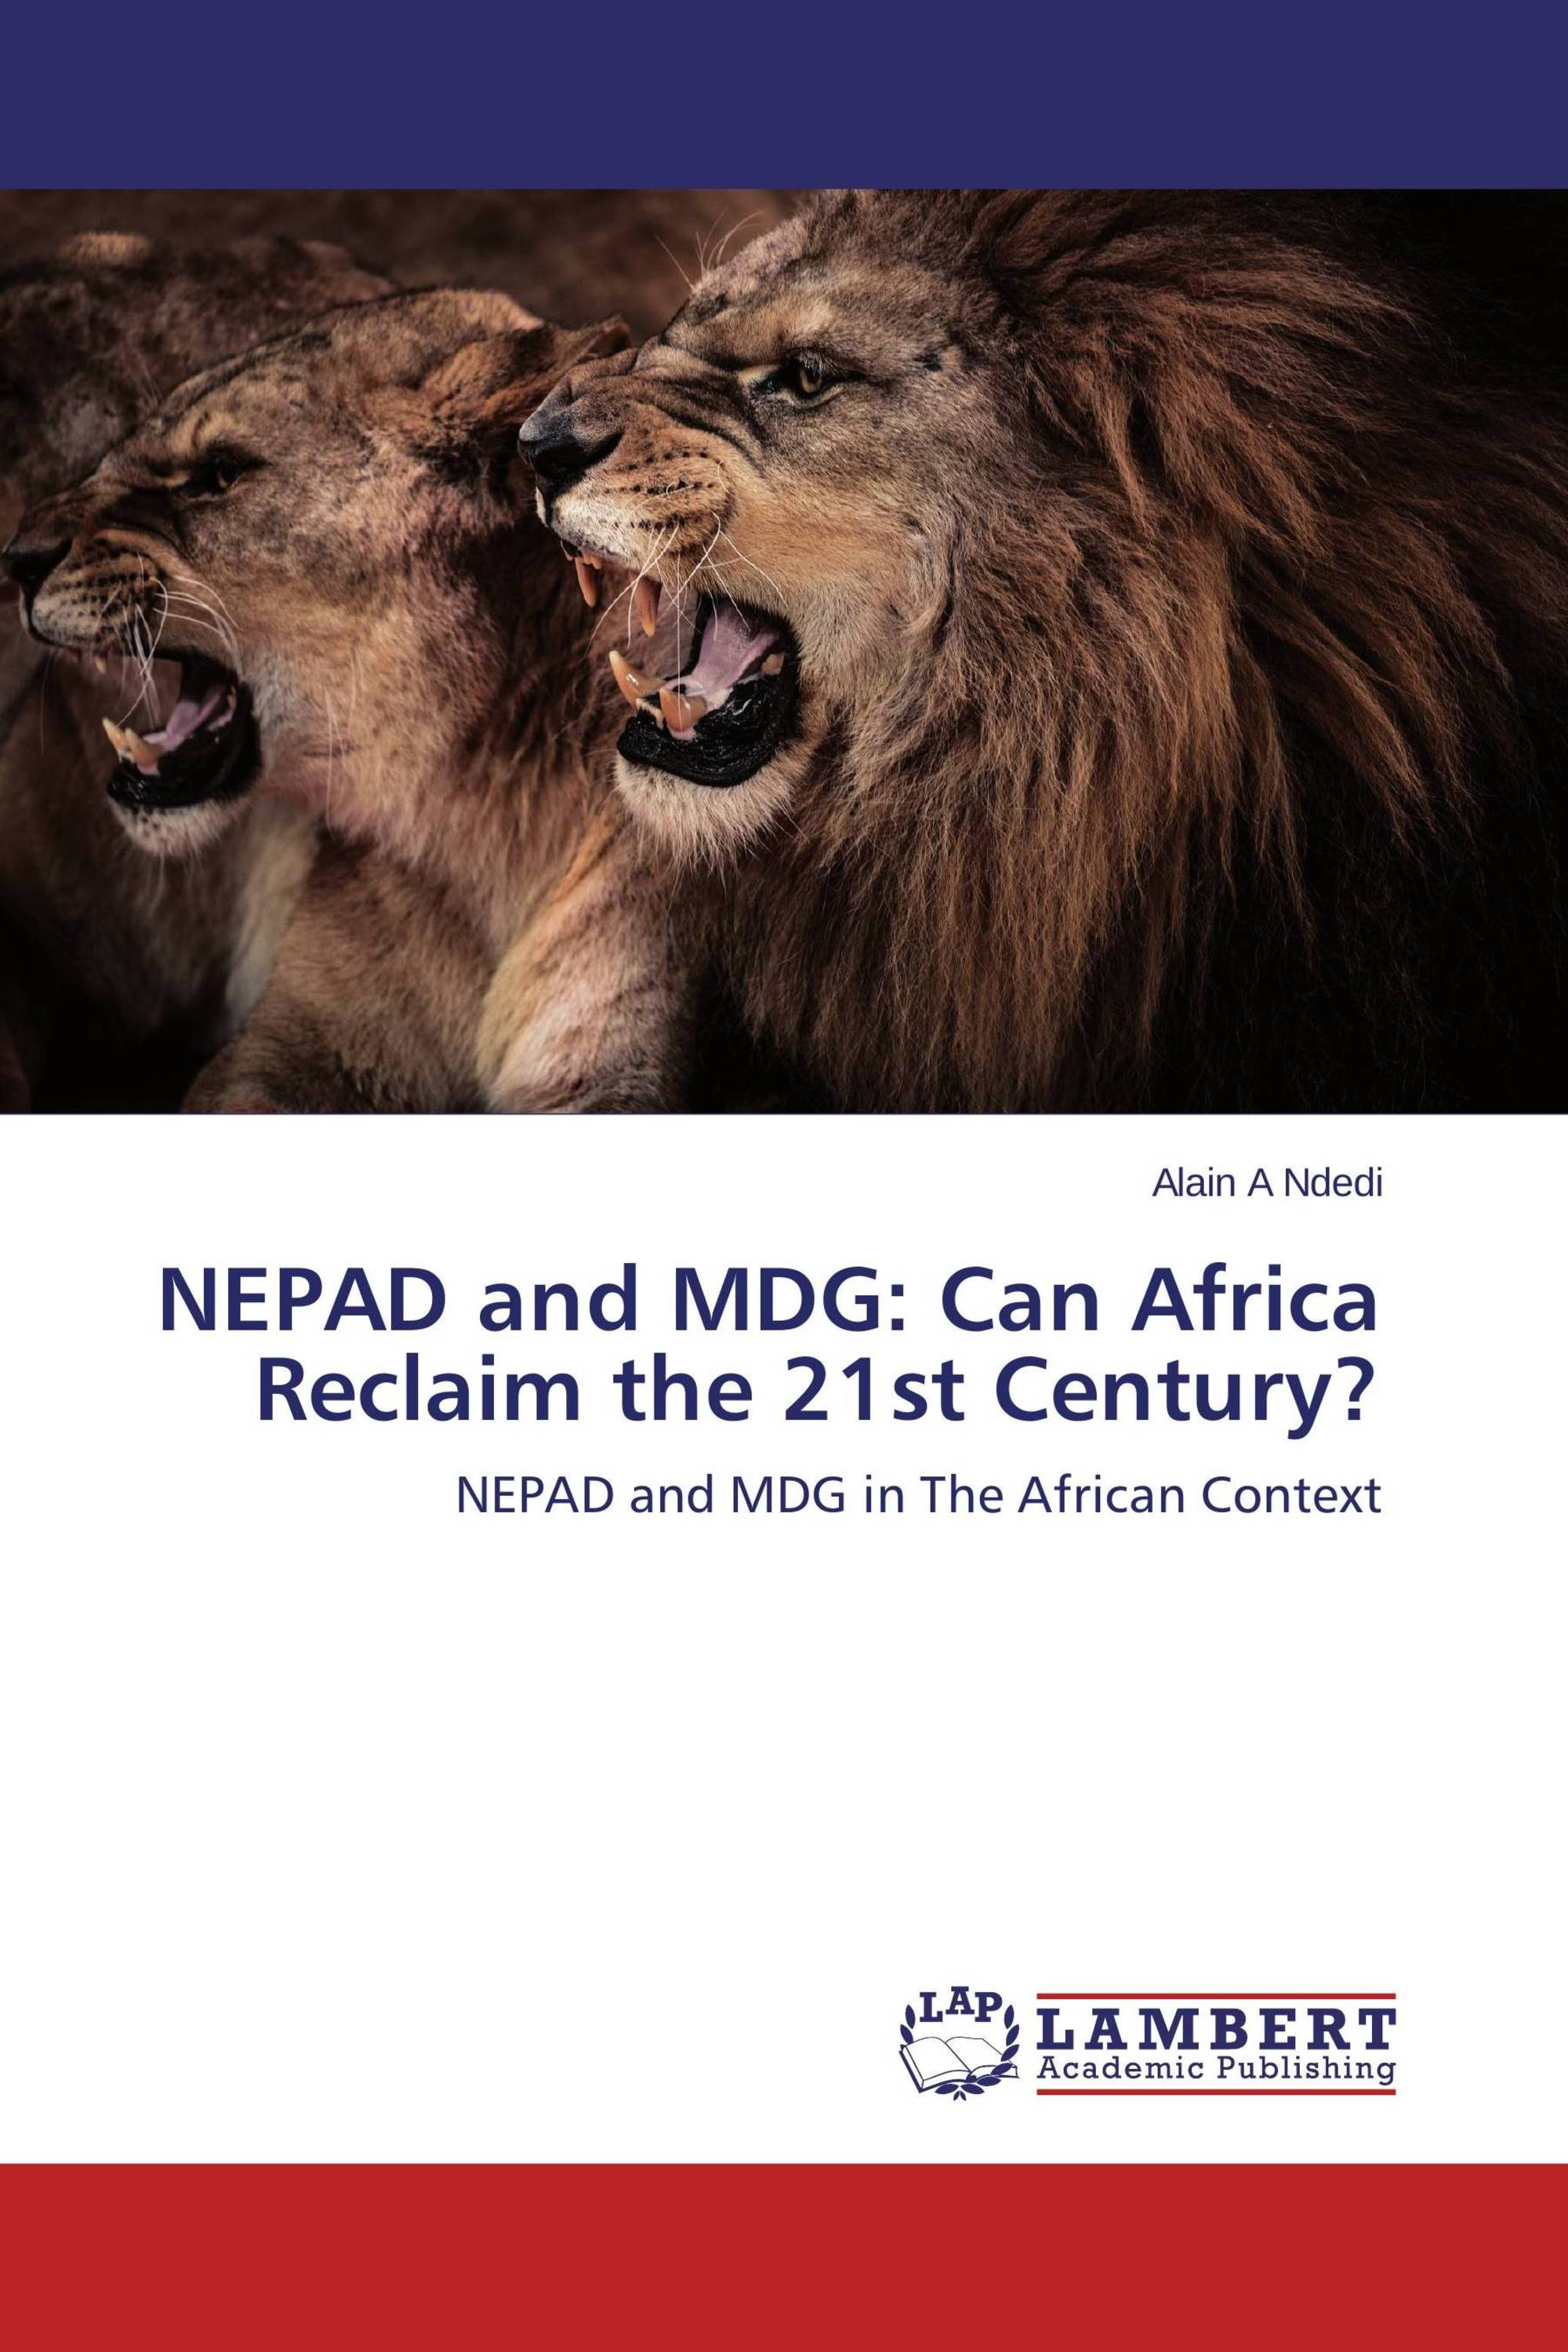 NEPAD and MDG: Can Africa Reclaim the 21st Century?